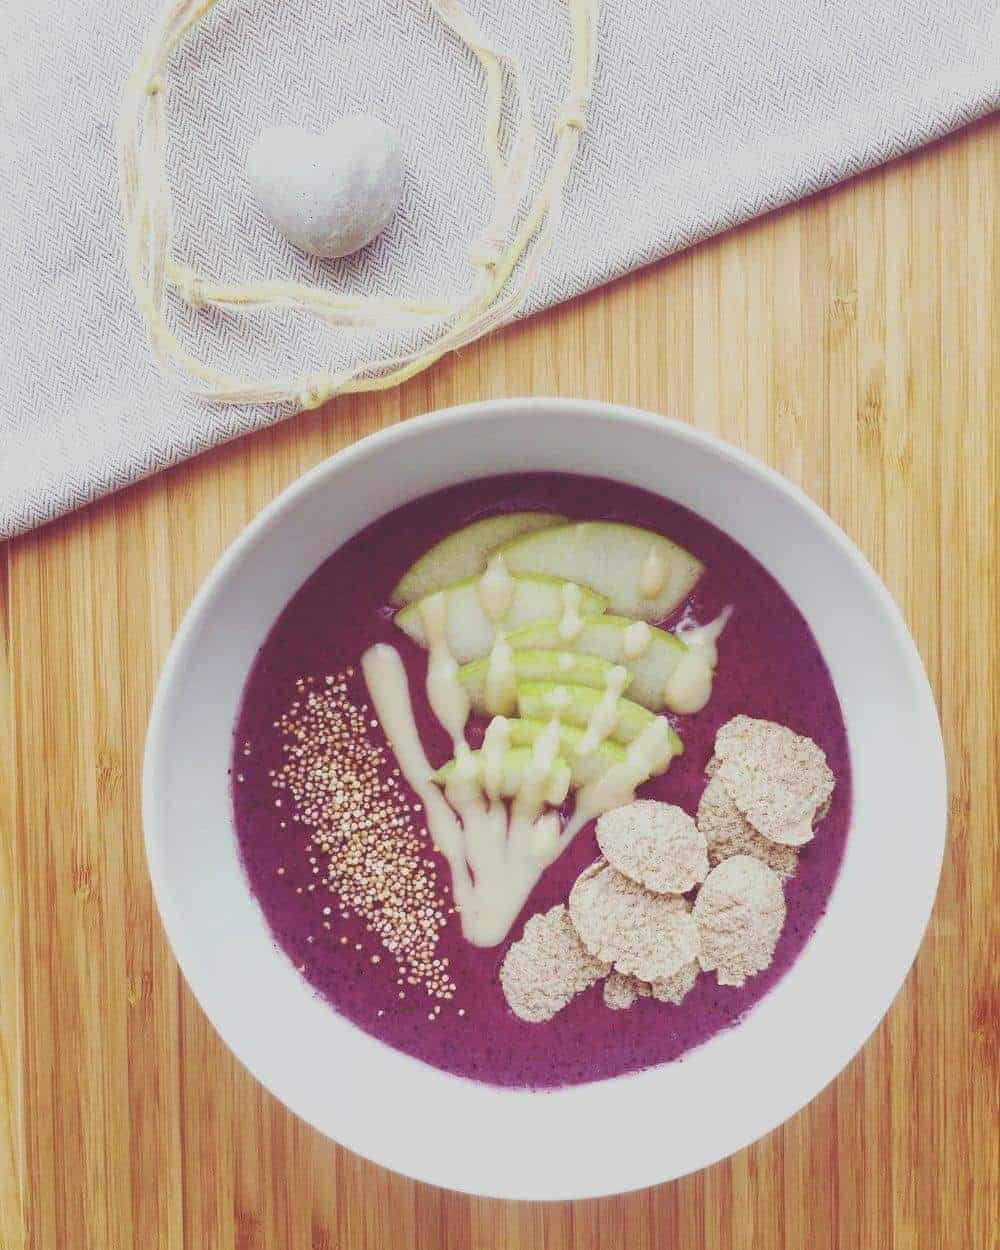 acai bowl topped with apple and popped amaranth